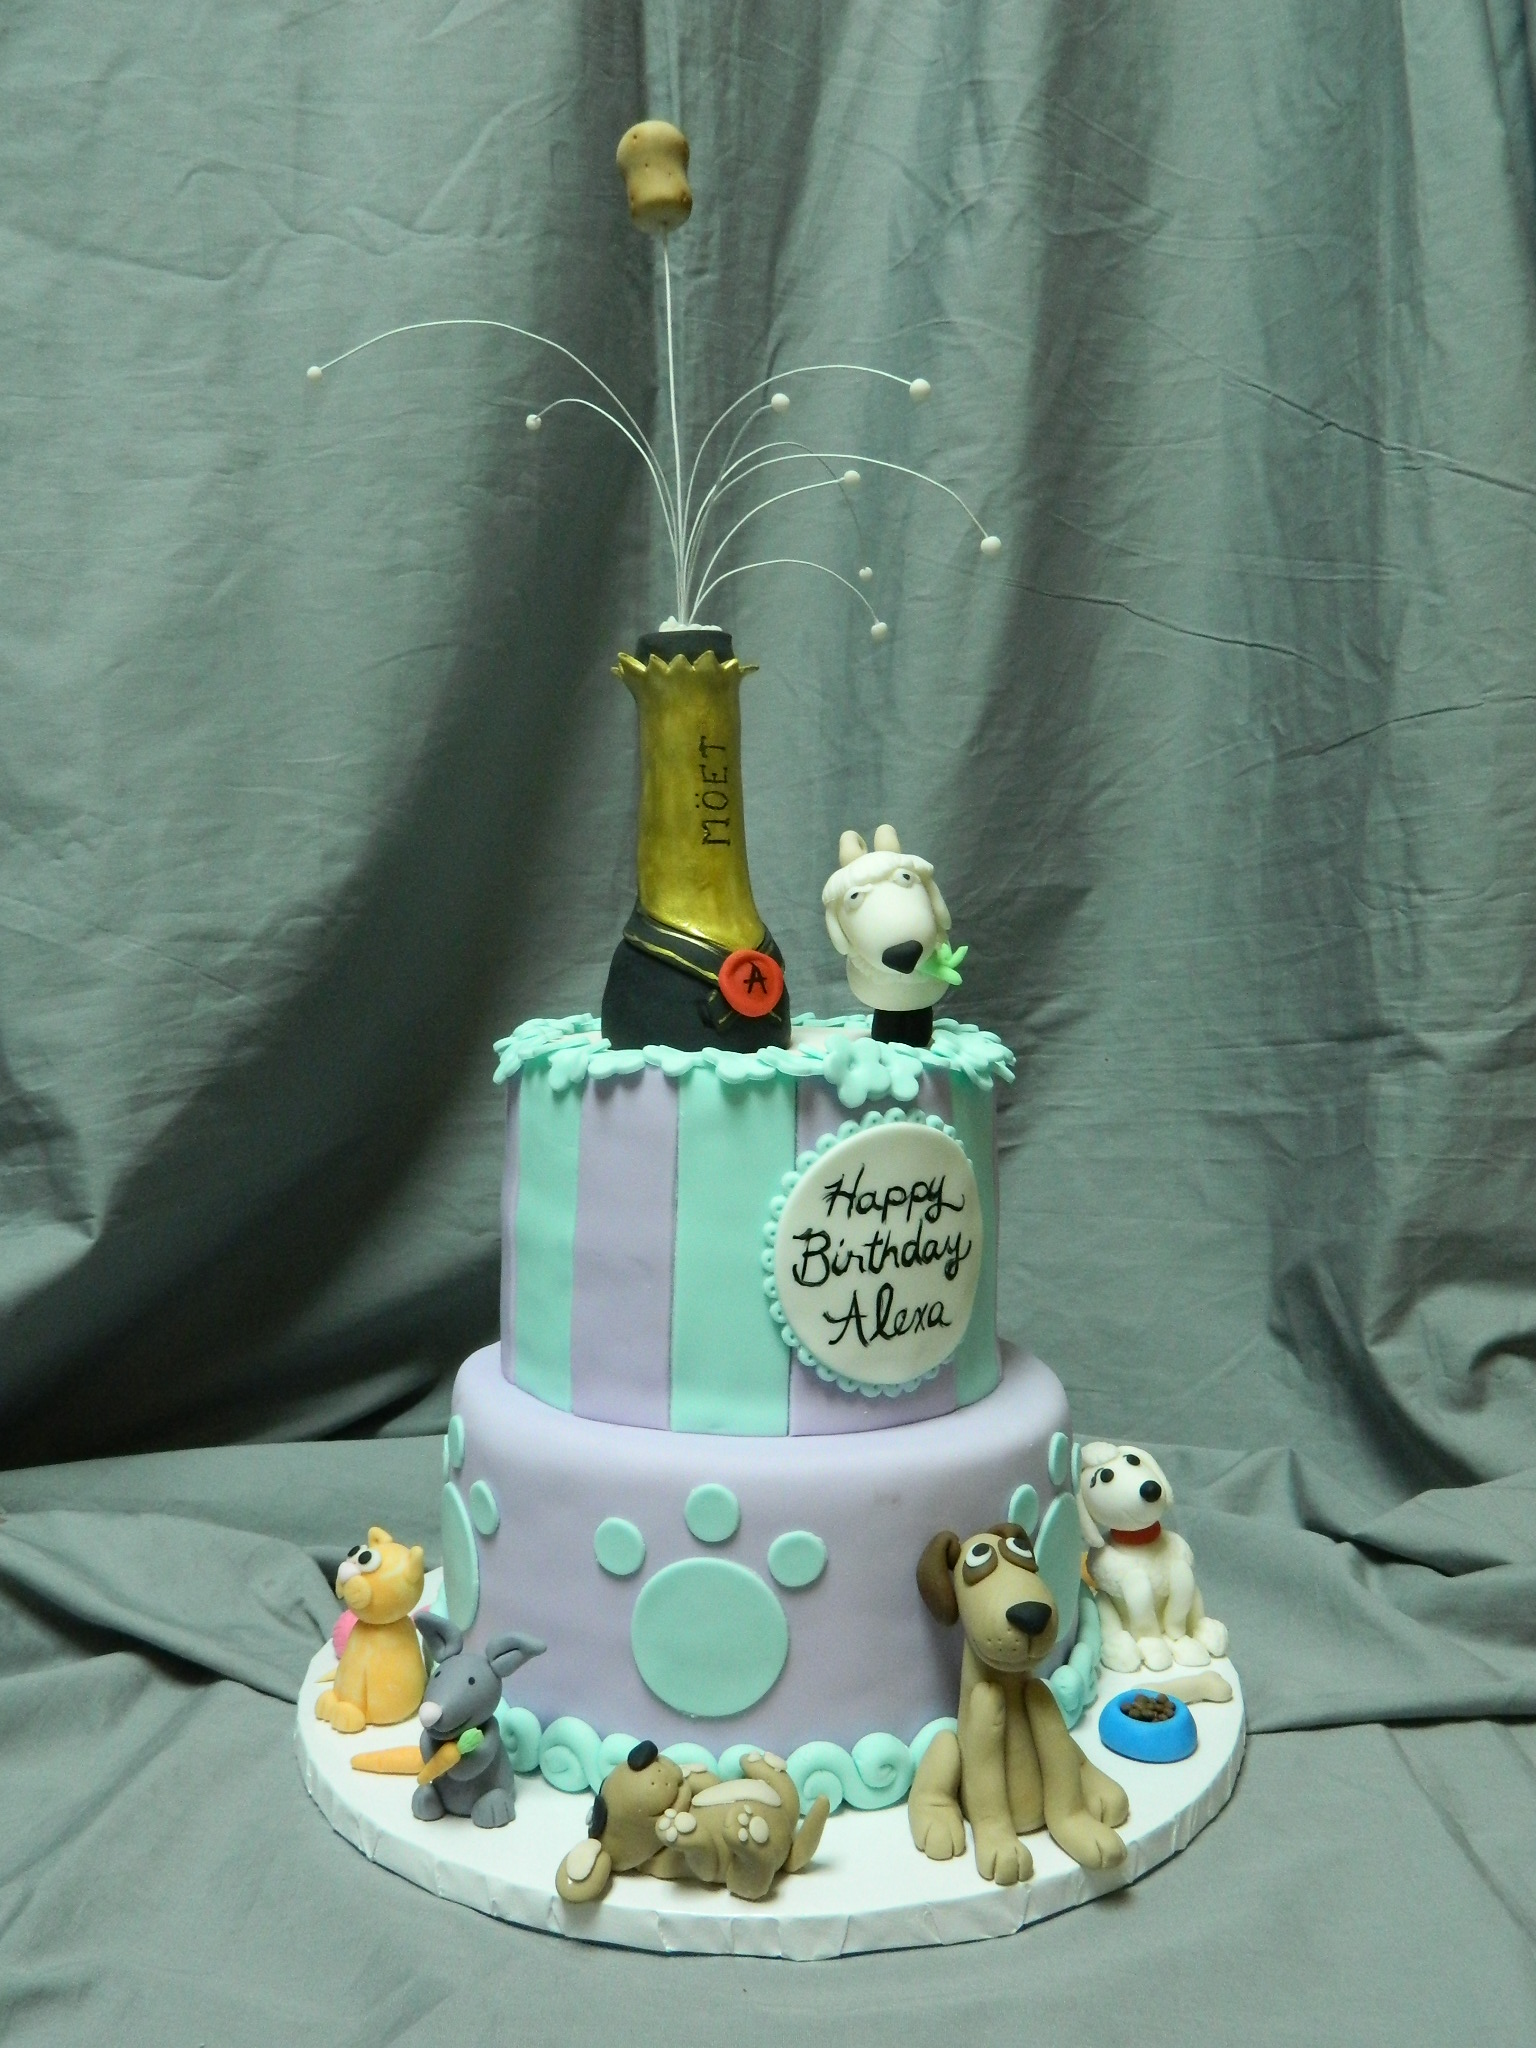 Puppies, kittens, bunnies & a goat celebratory custom birthday cake